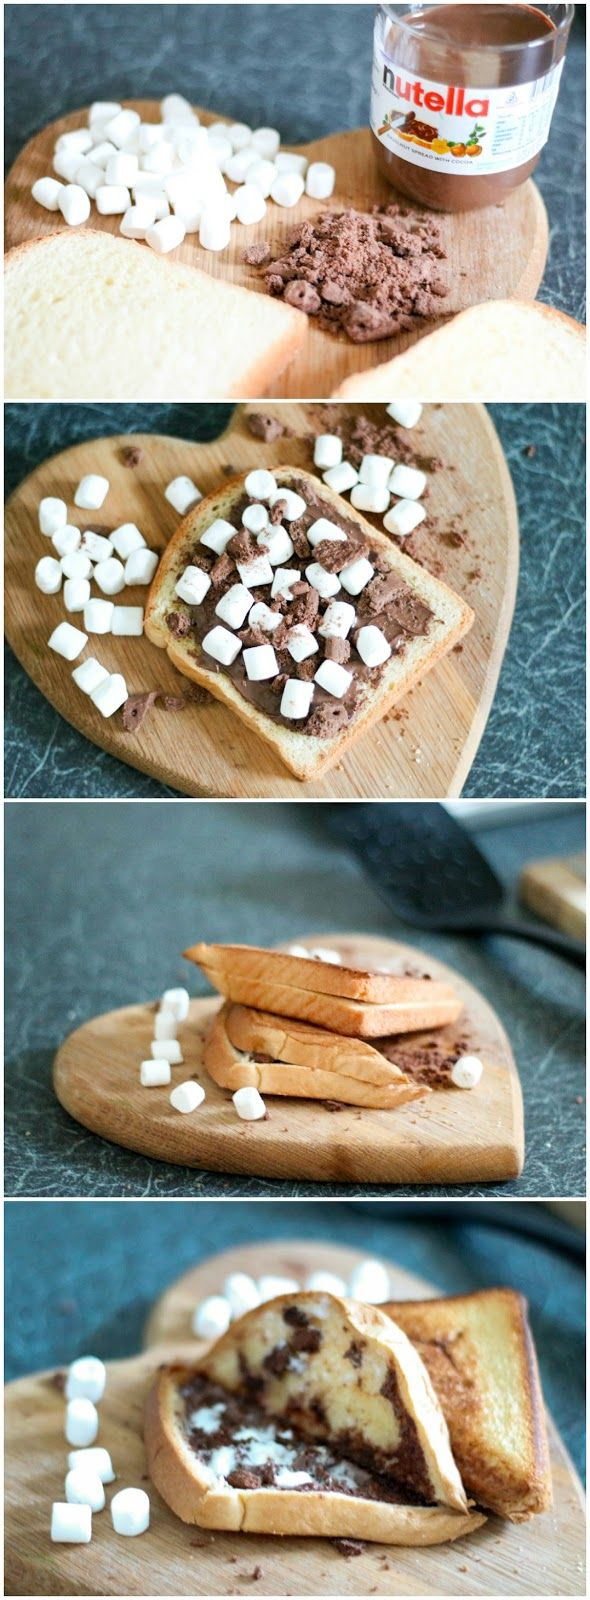 Toasted S'more: Break the Bourbon biscuit into small pieces. Spread the Nutella on the brioche and spread the biscuit and marshmallow on the Nutella brioche.   For more, check out this post on:  5 Simple Vegetarian Recipes Using Cuisinart Sandwich Maker